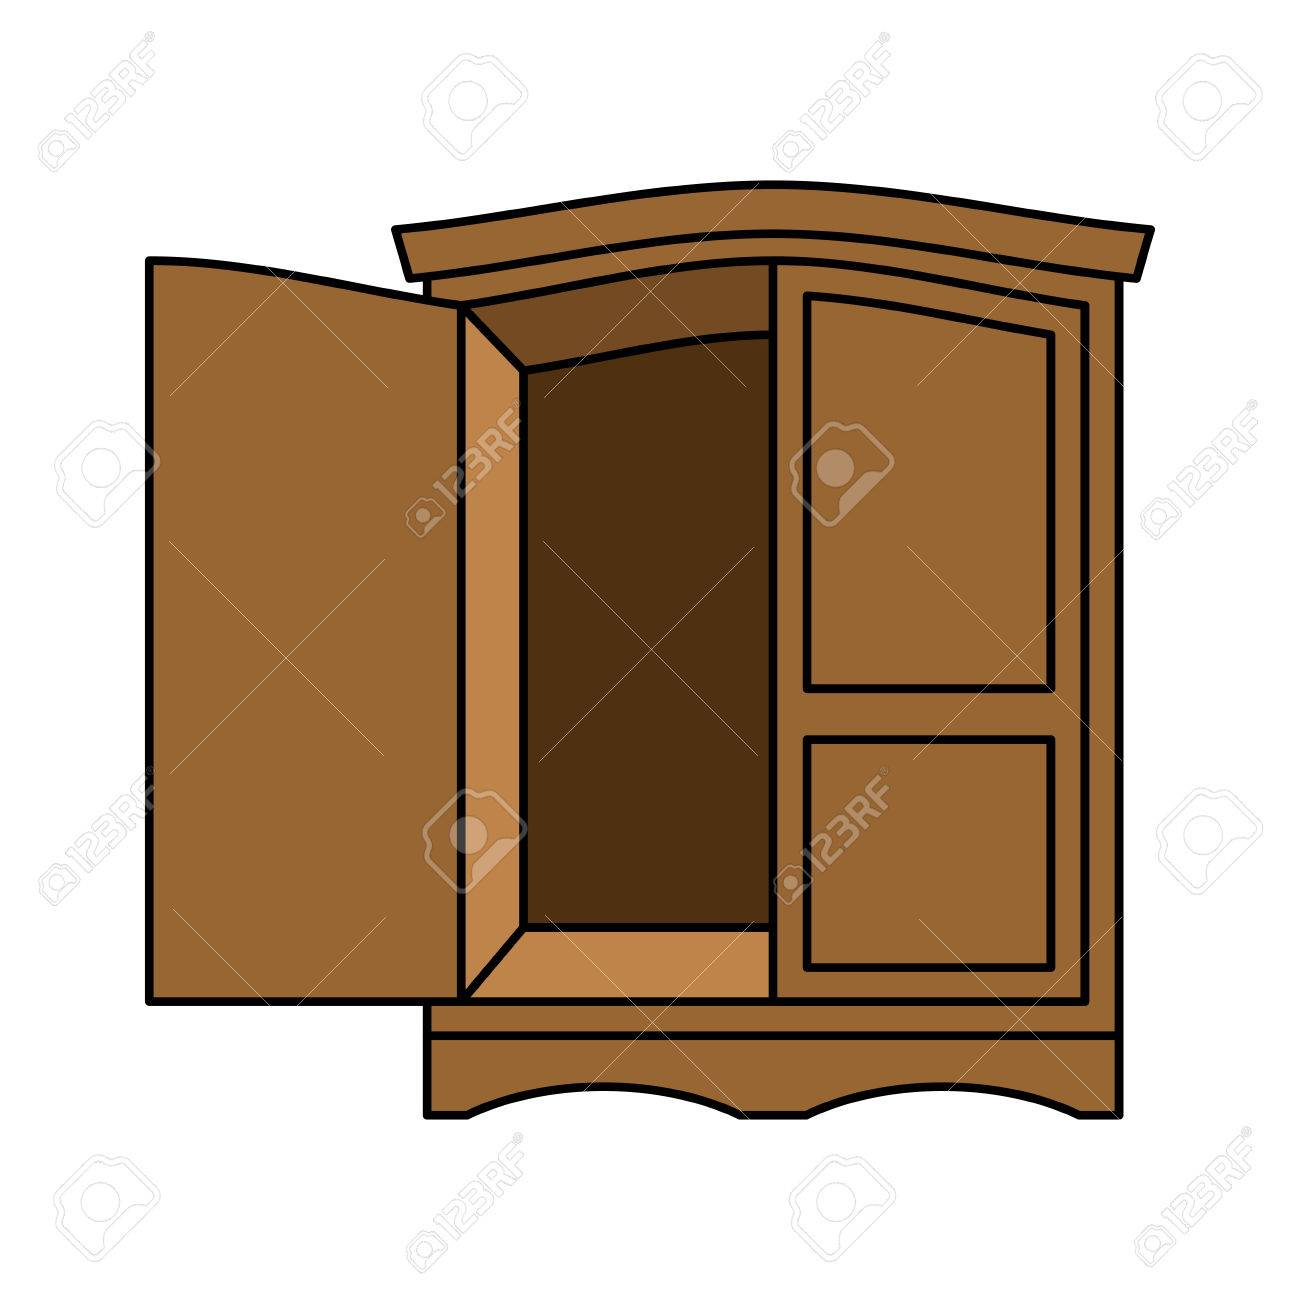 Wardrobe Wood Retro. Furniture For Clothes. Vintage Cabinet ...